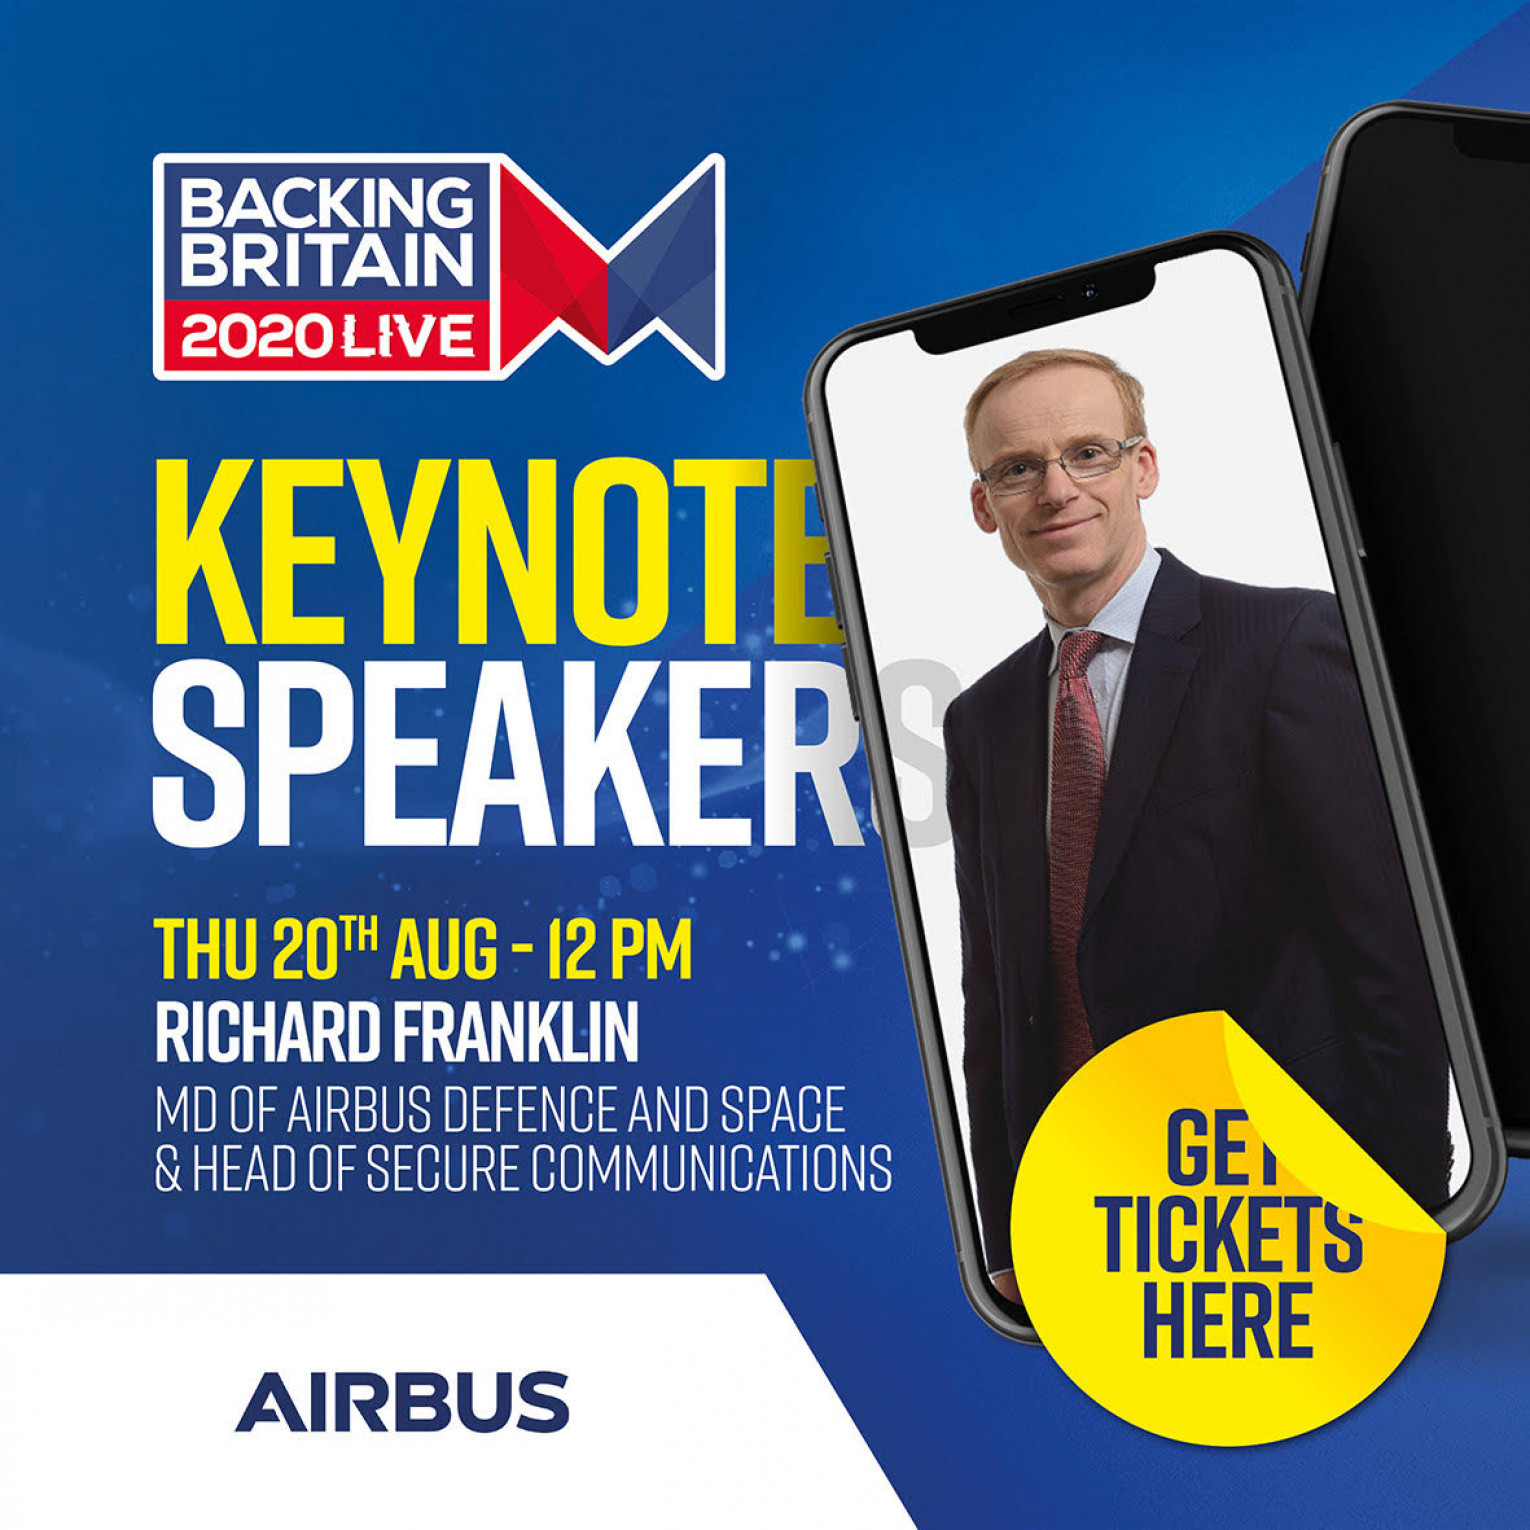 Keynote speaker - Richard Franklin UK MD of Airbus Defence and Space & Head of Secure Communications